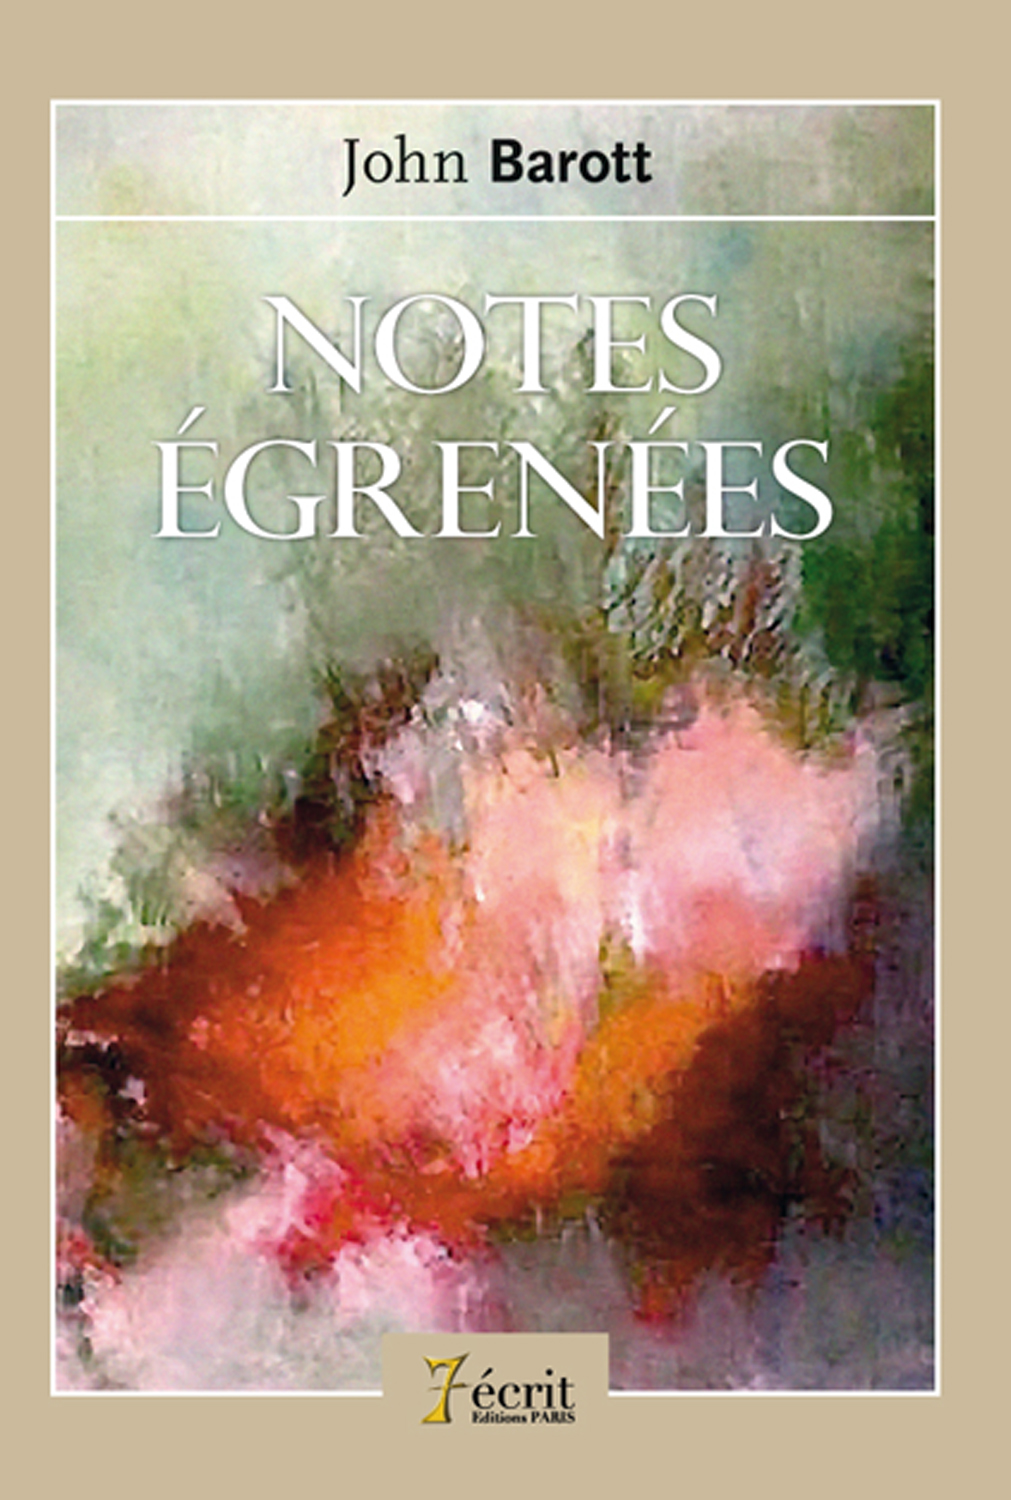 Notes égrenées